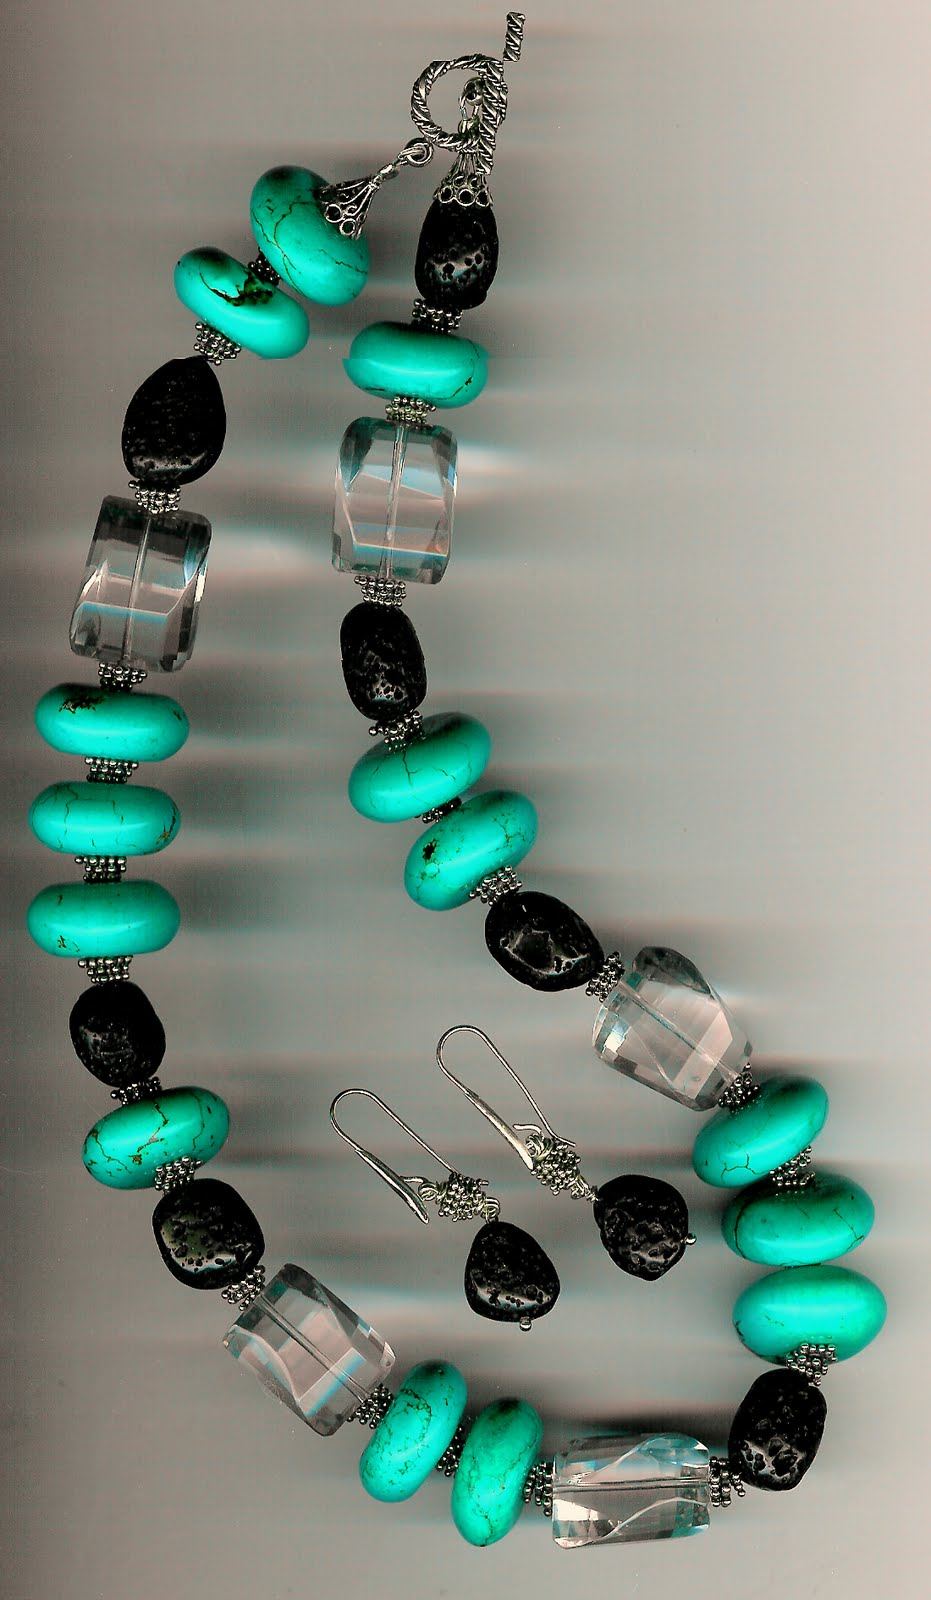 162. Turquoise, Clear Fluorite, Black Lava with Bali Sterling Silver + Earrings